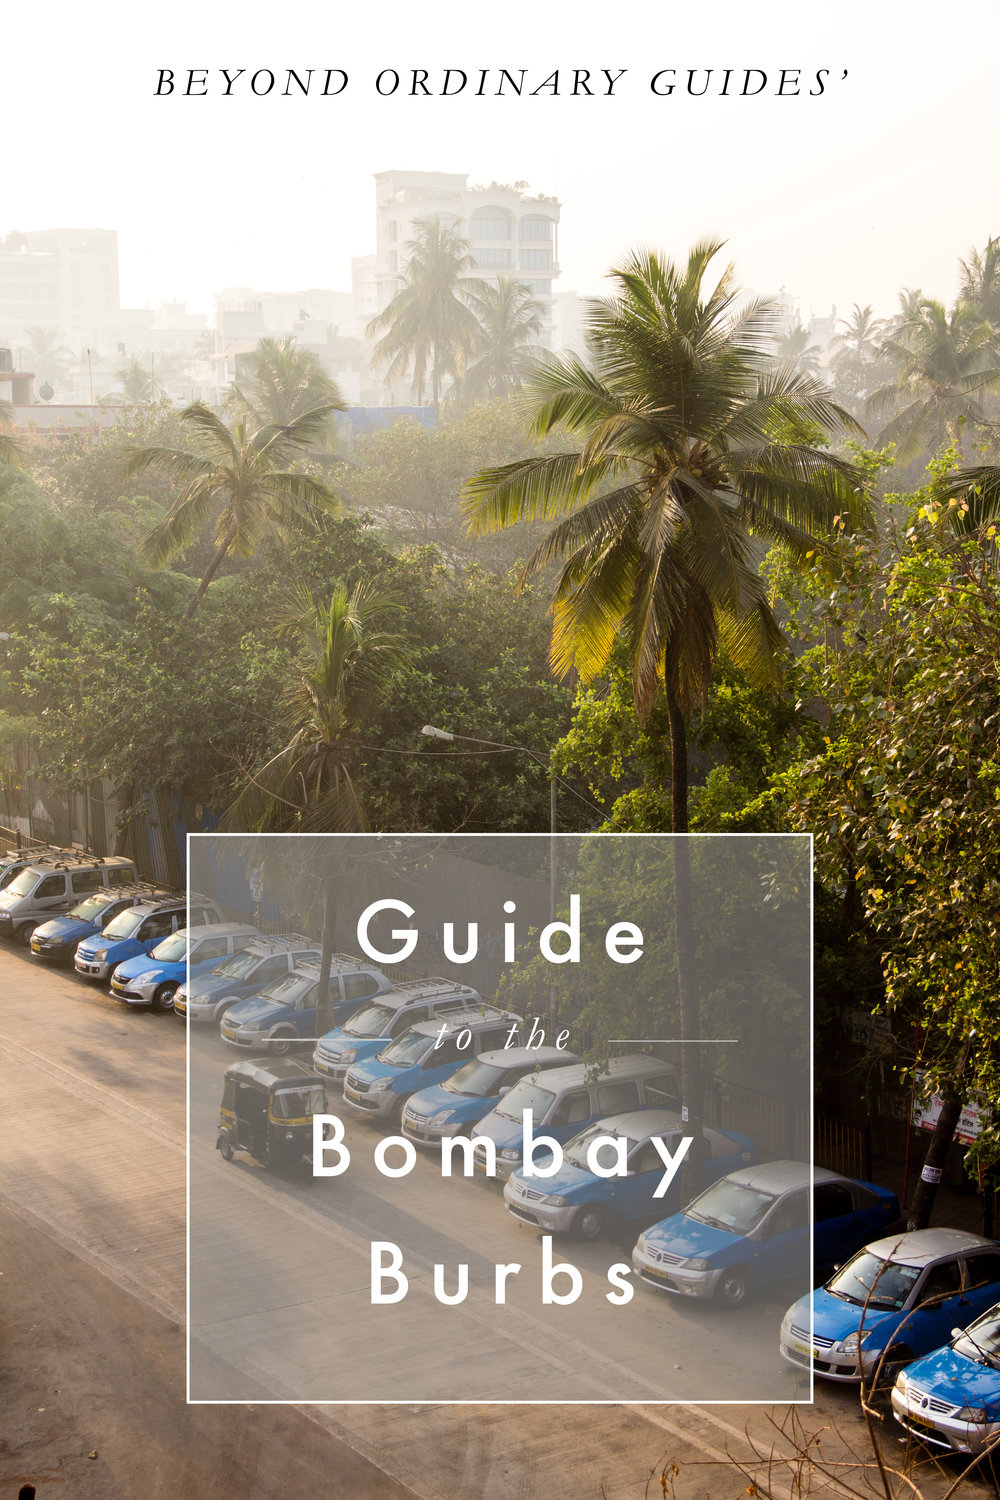 Guide to the Bombay Burbs | Beyond Ordinary Guides